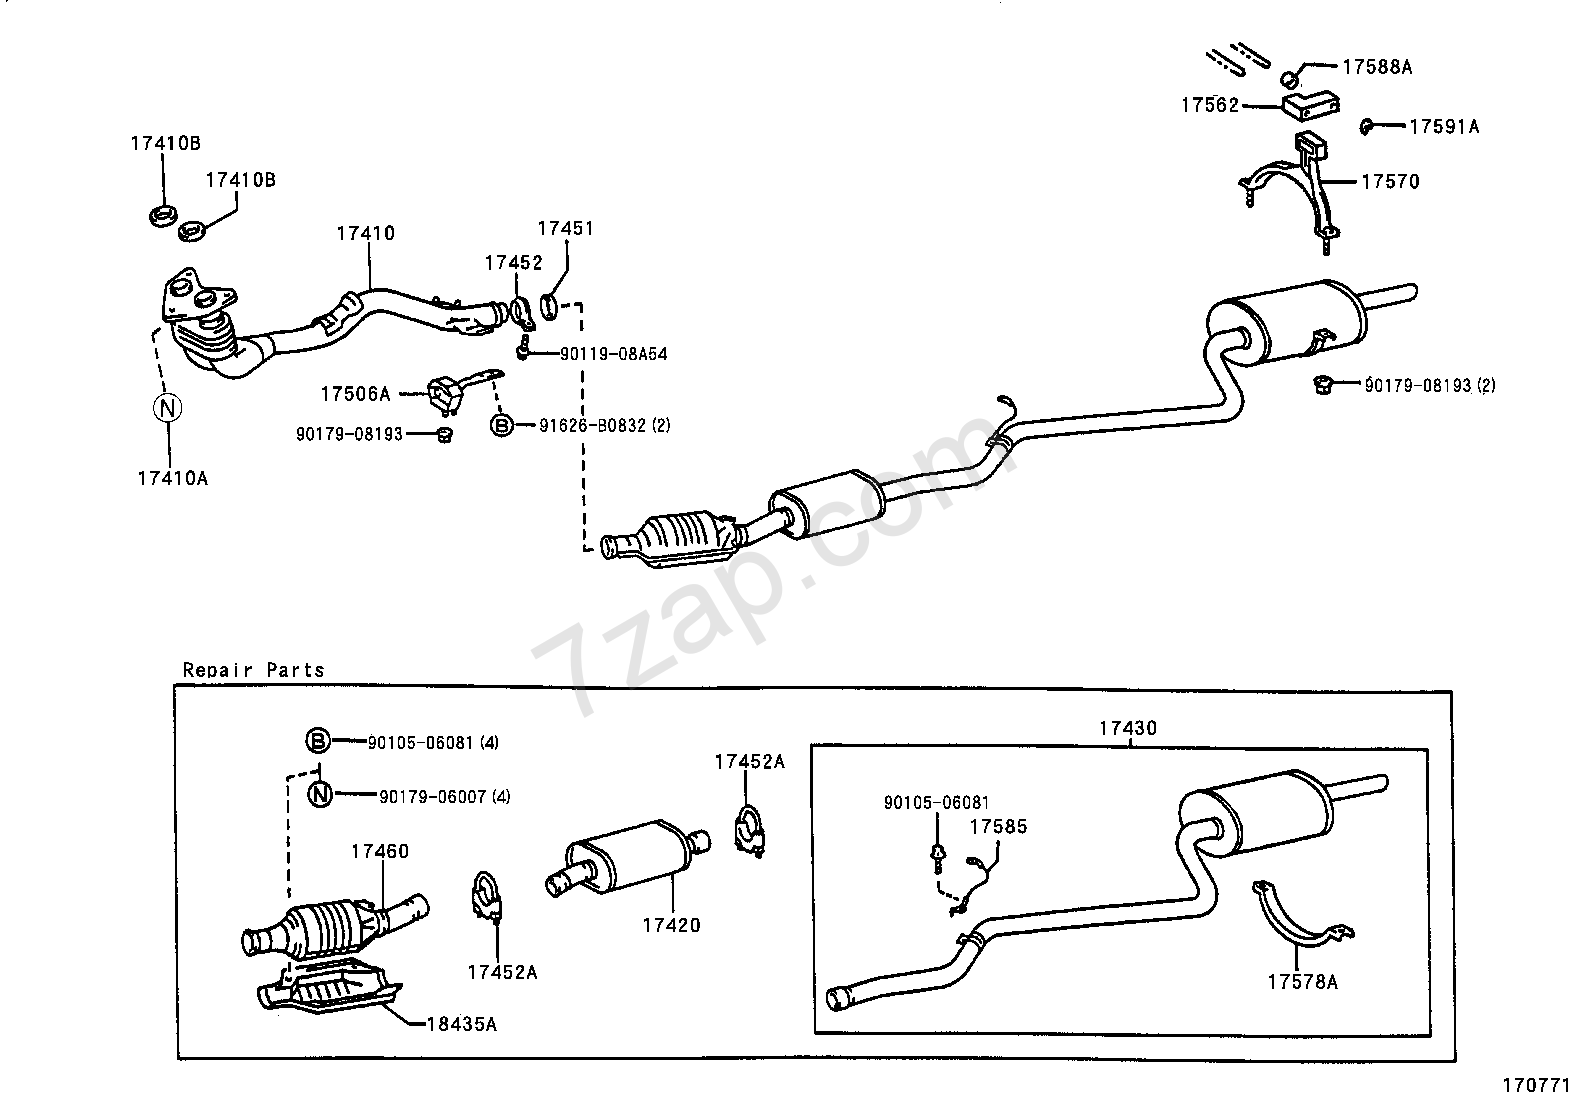 1989 Toyota Exhaust Diagram Electrical Wiring Camry 1993 Mr2 Trusted Schematics Powerstroke